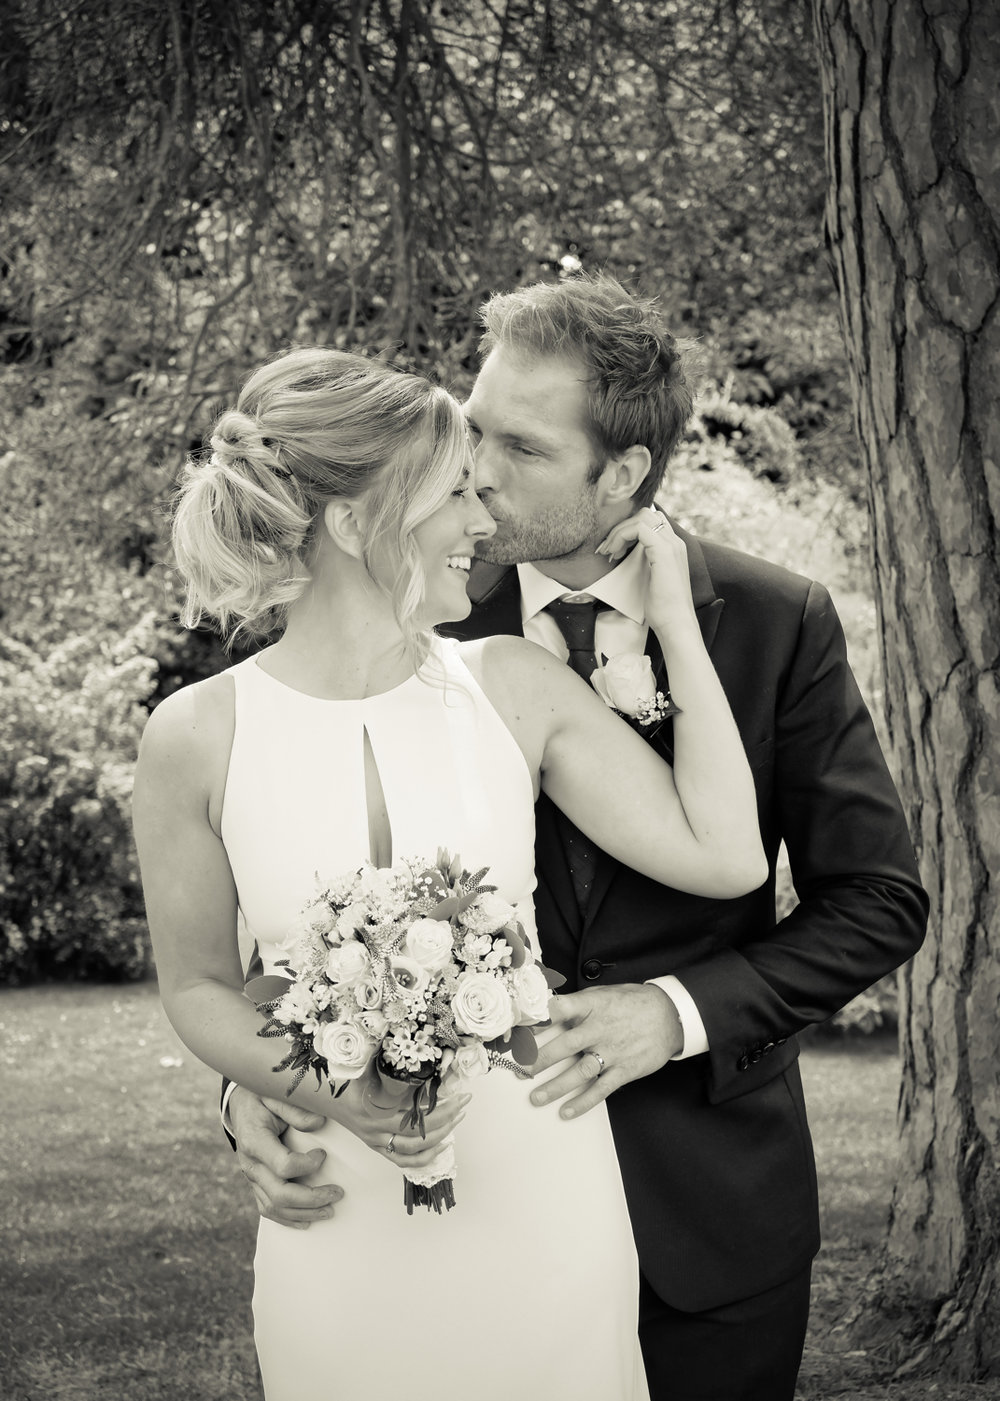 Wedding Photographer - www.thefxworks.co.uk22.JPG